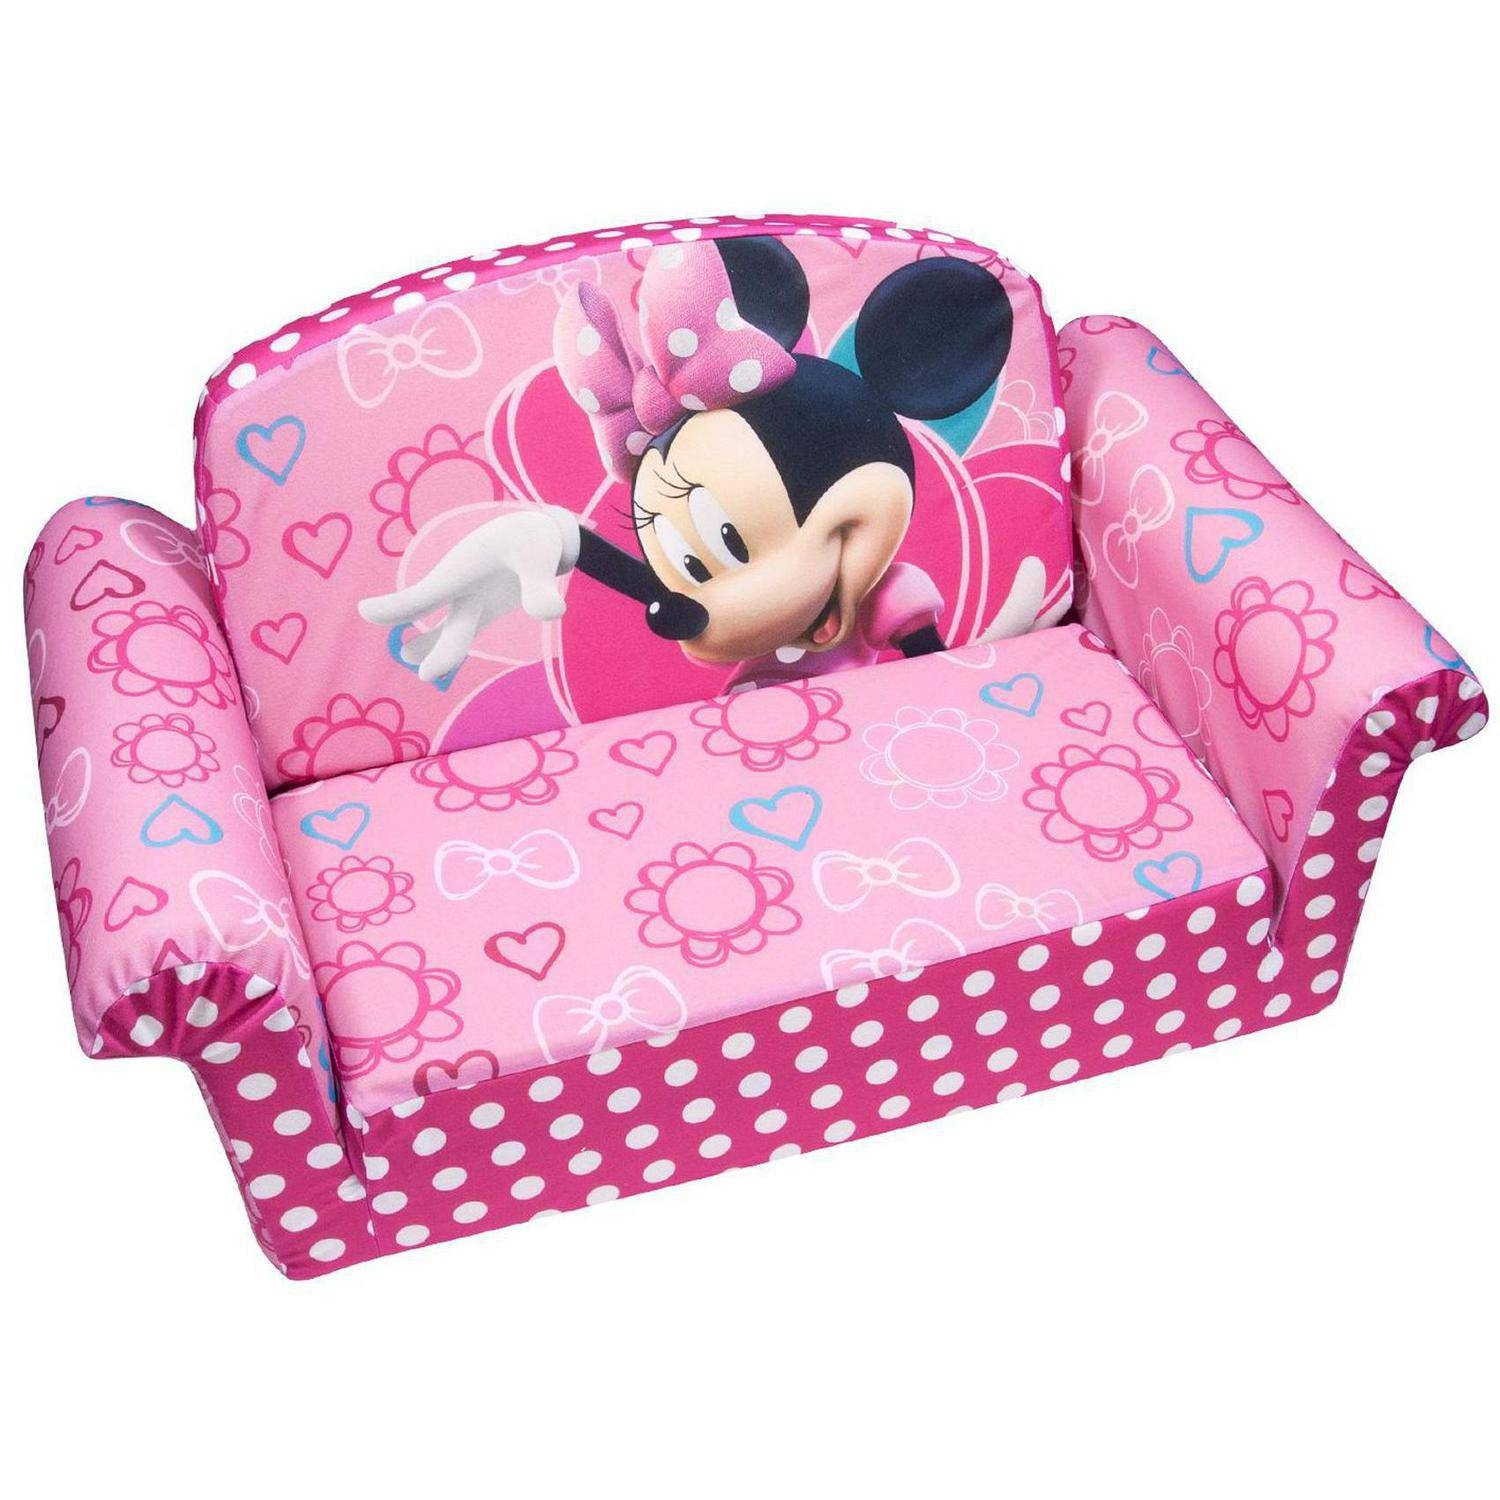 Sofa Chair For Toddlers Home Chair Designs With Disney Sofa Chairs (Image 14 of 15)